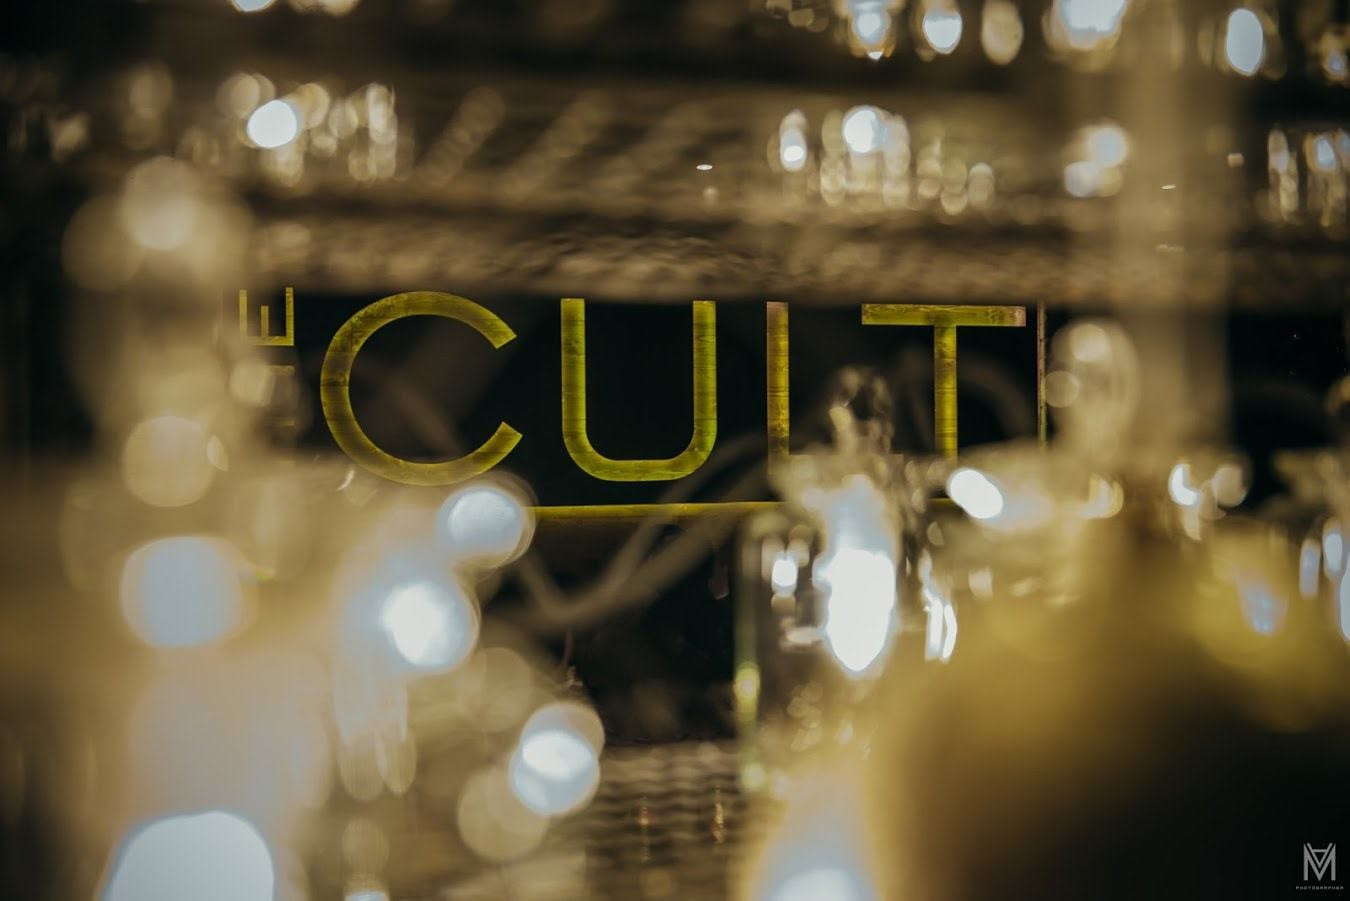 The Cult - фото 9